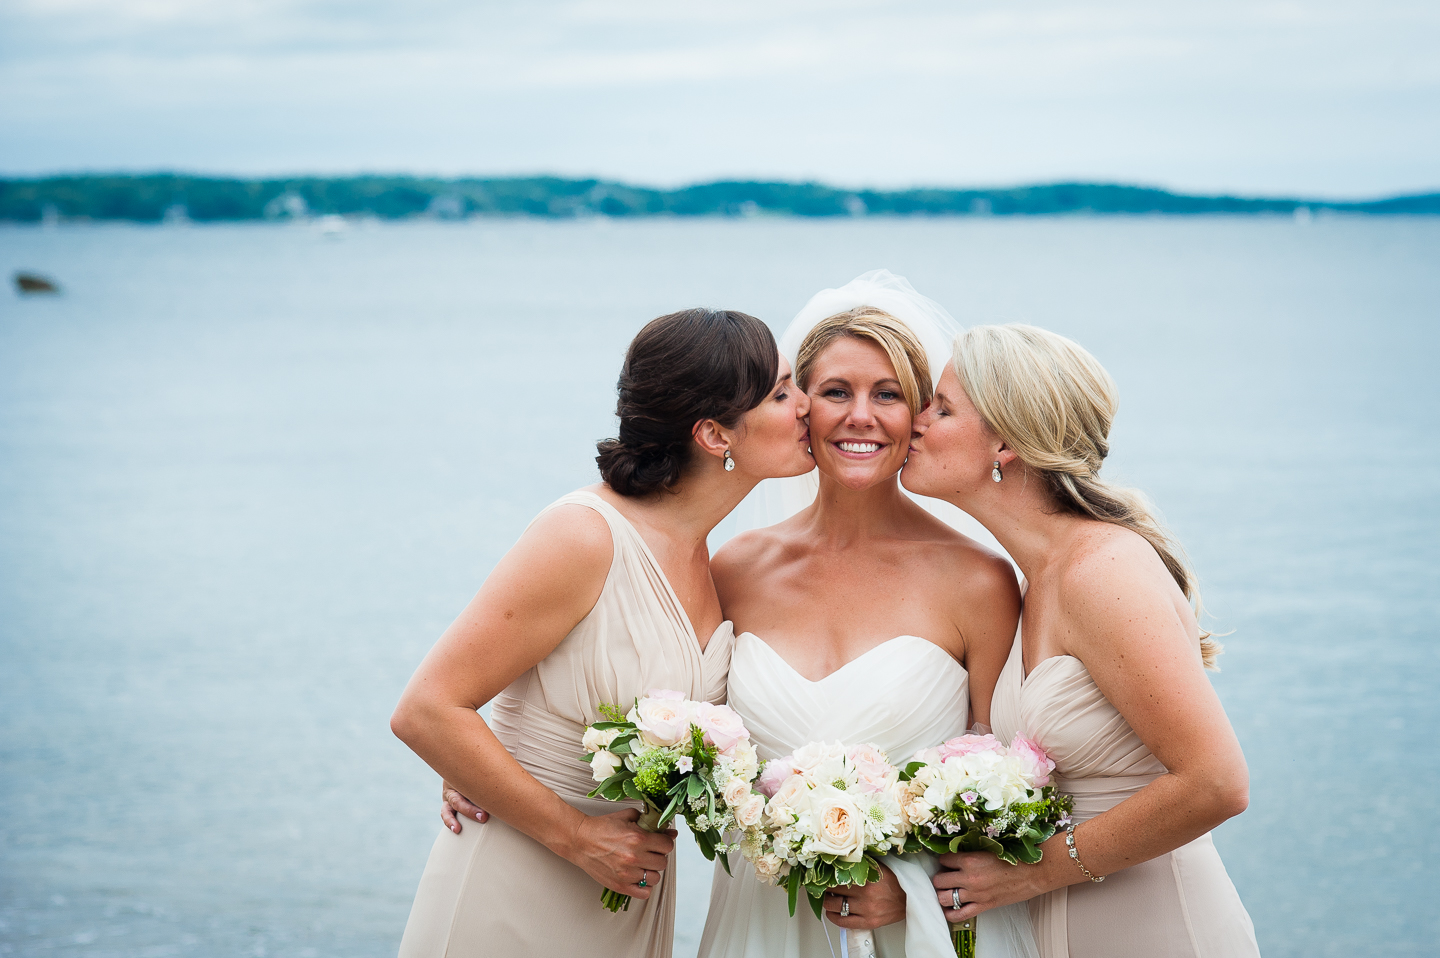 the brides two sisters give her a kiss on the cheek